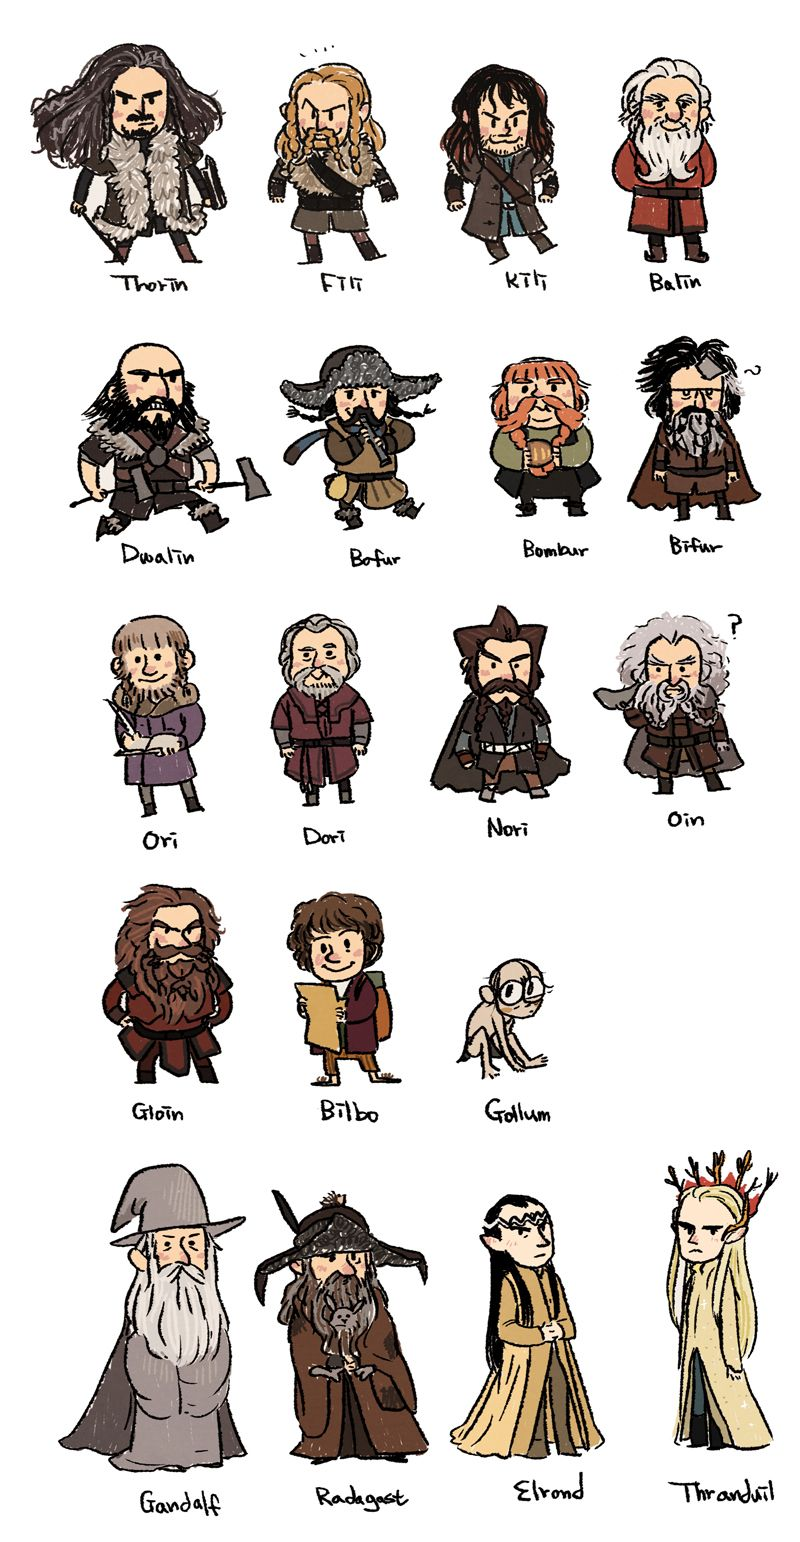 Risultati immagini per cartoon lord of the rings characters